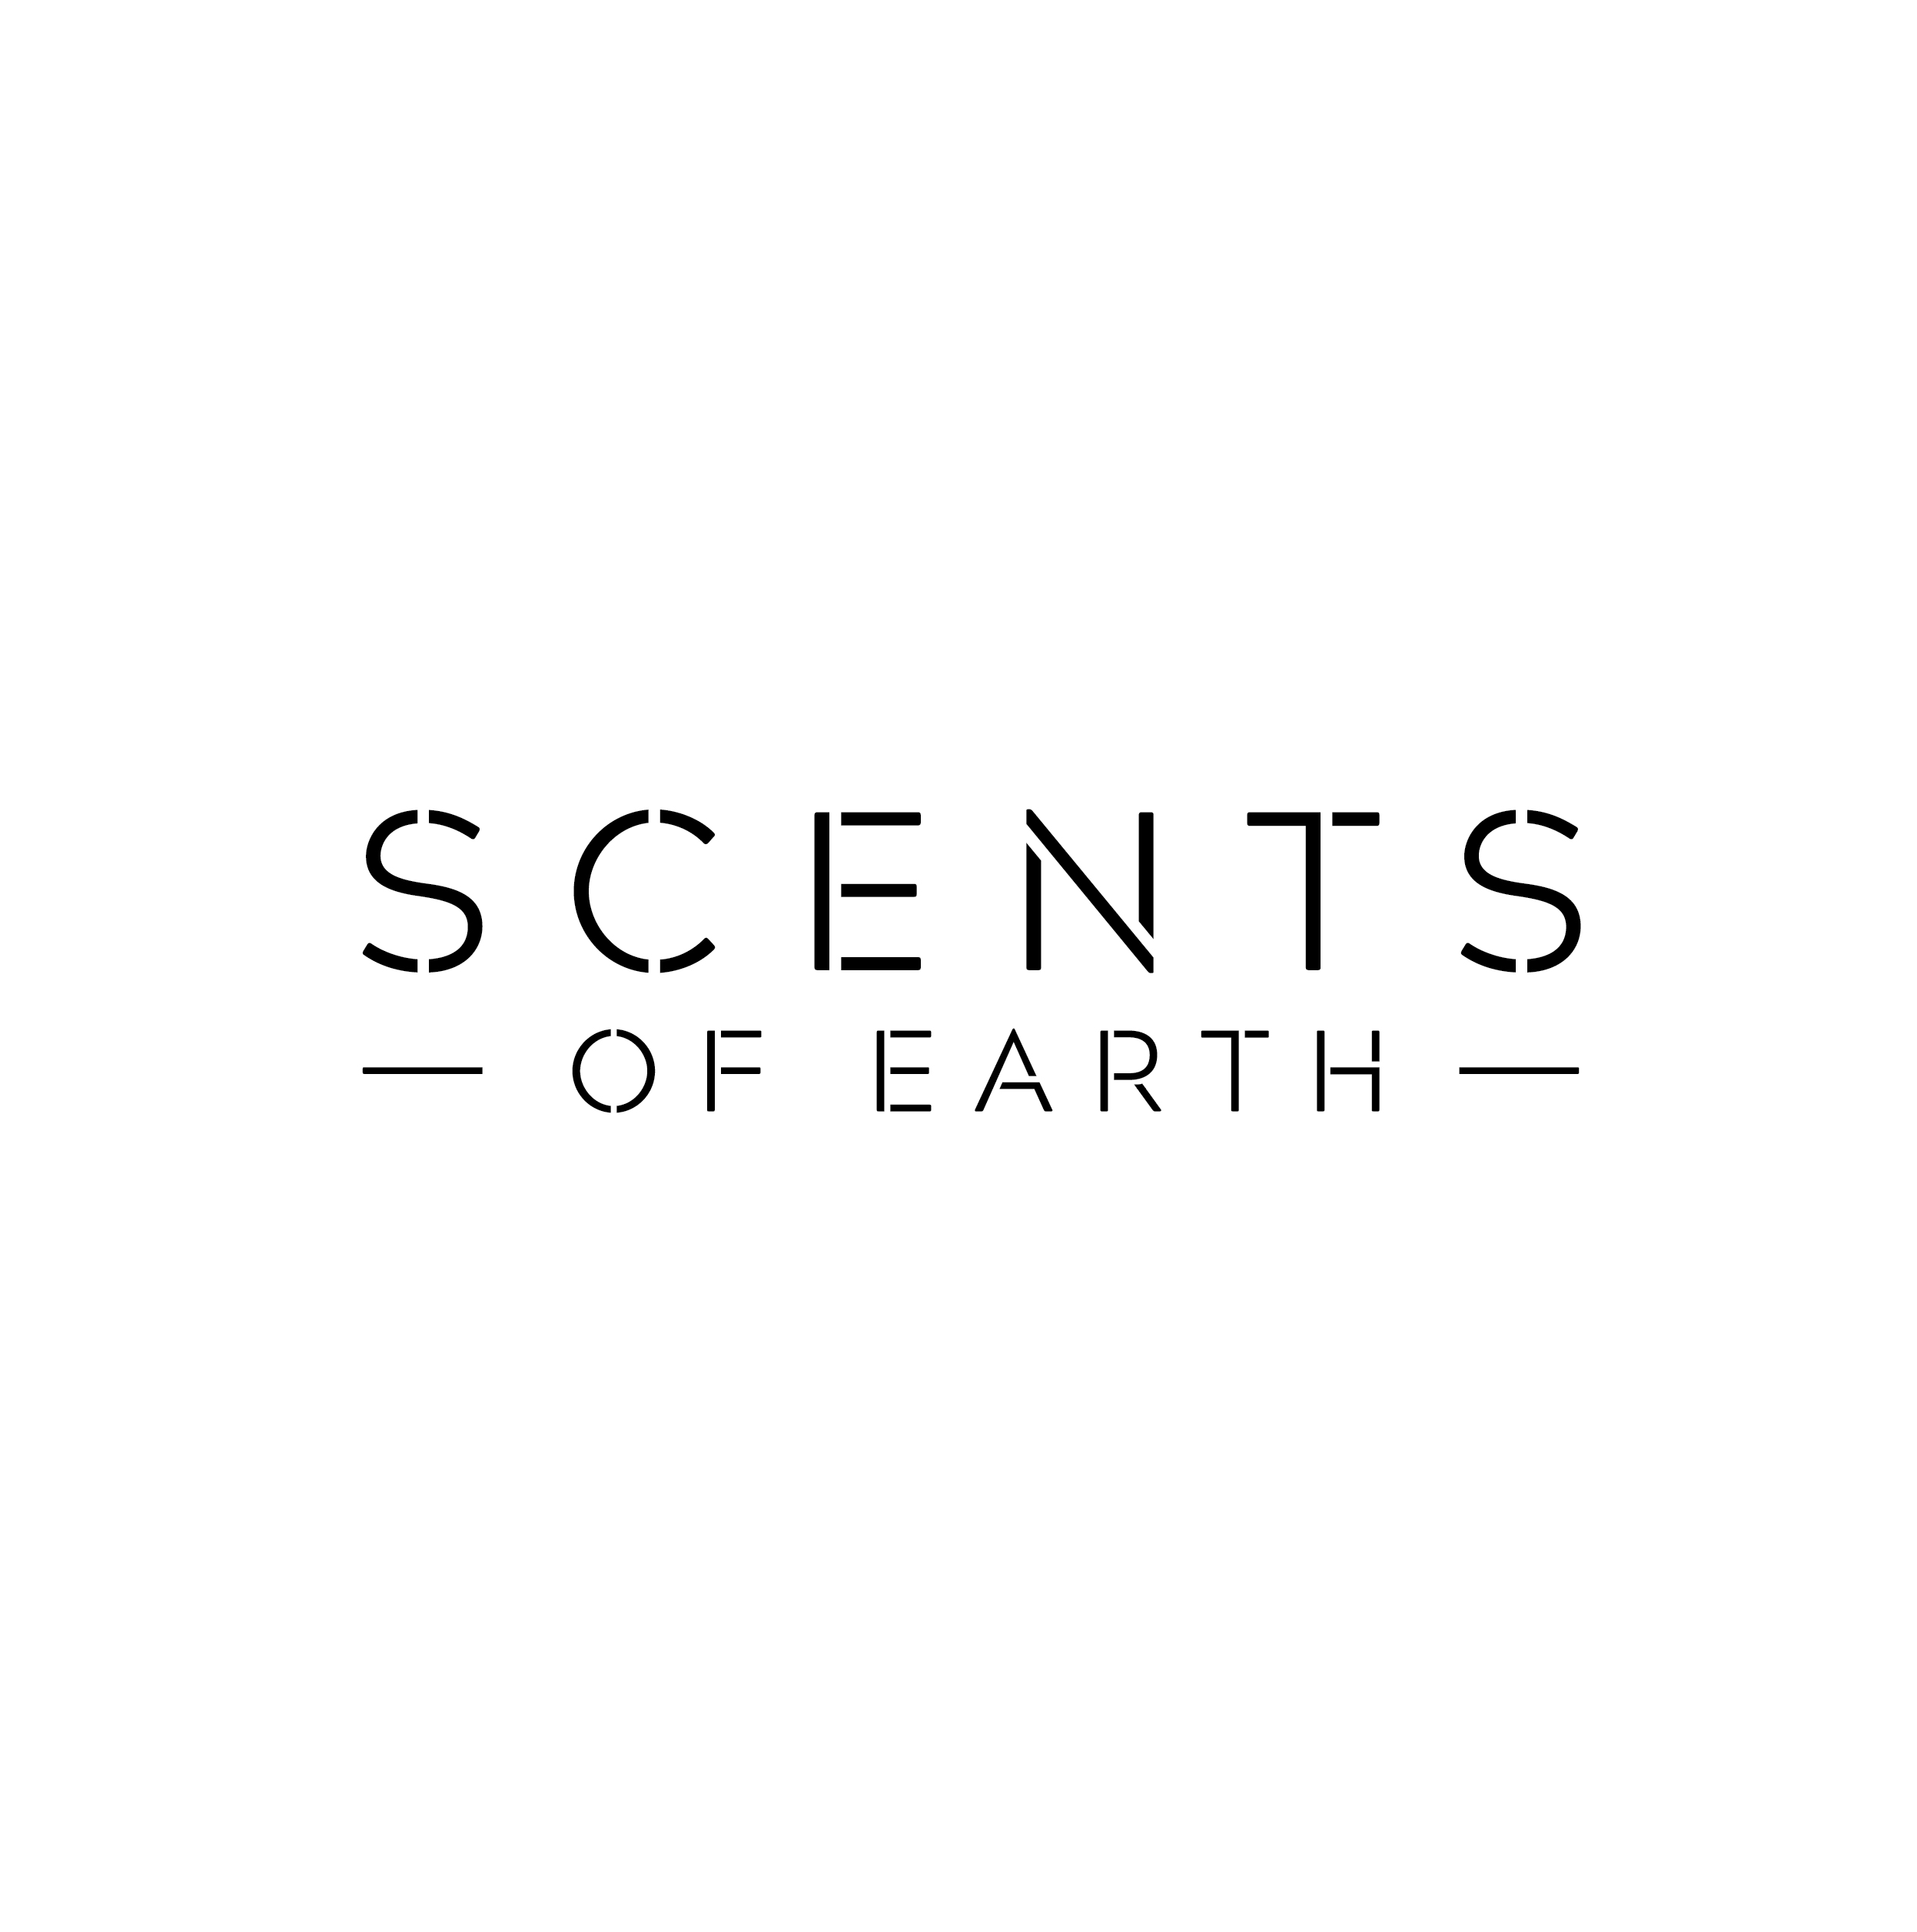 Scents of Earth logo design